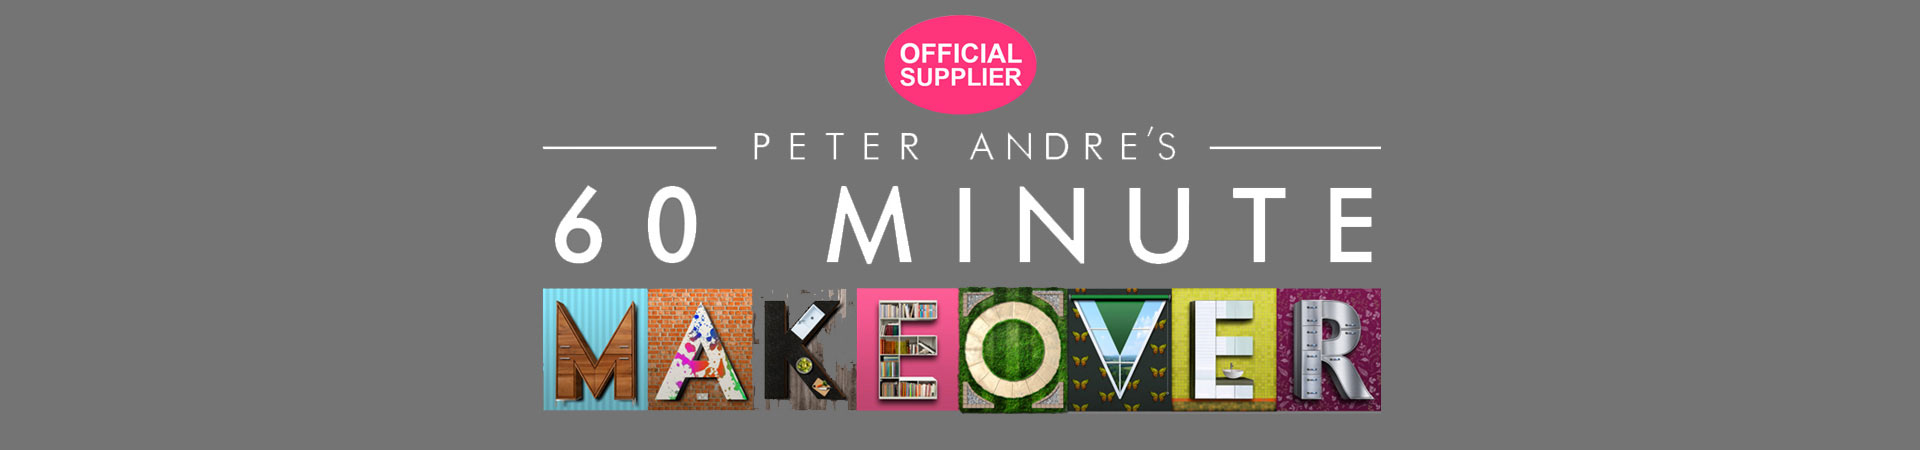 itv 60 minute makeover application